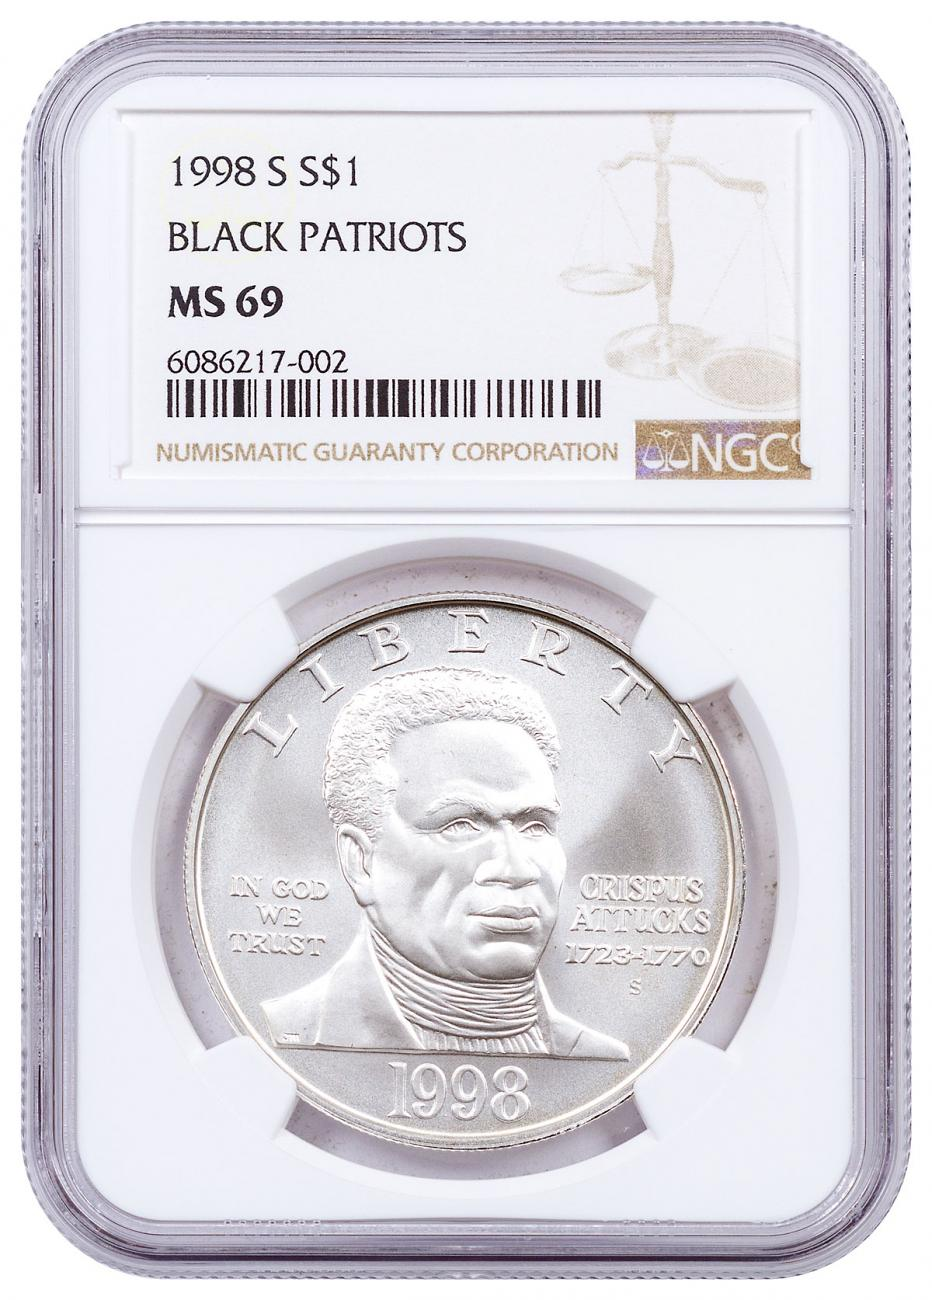 1998-S Black Revolutionary War Patriots Commemorative Silver Dollar NGC MS69 Brown Label